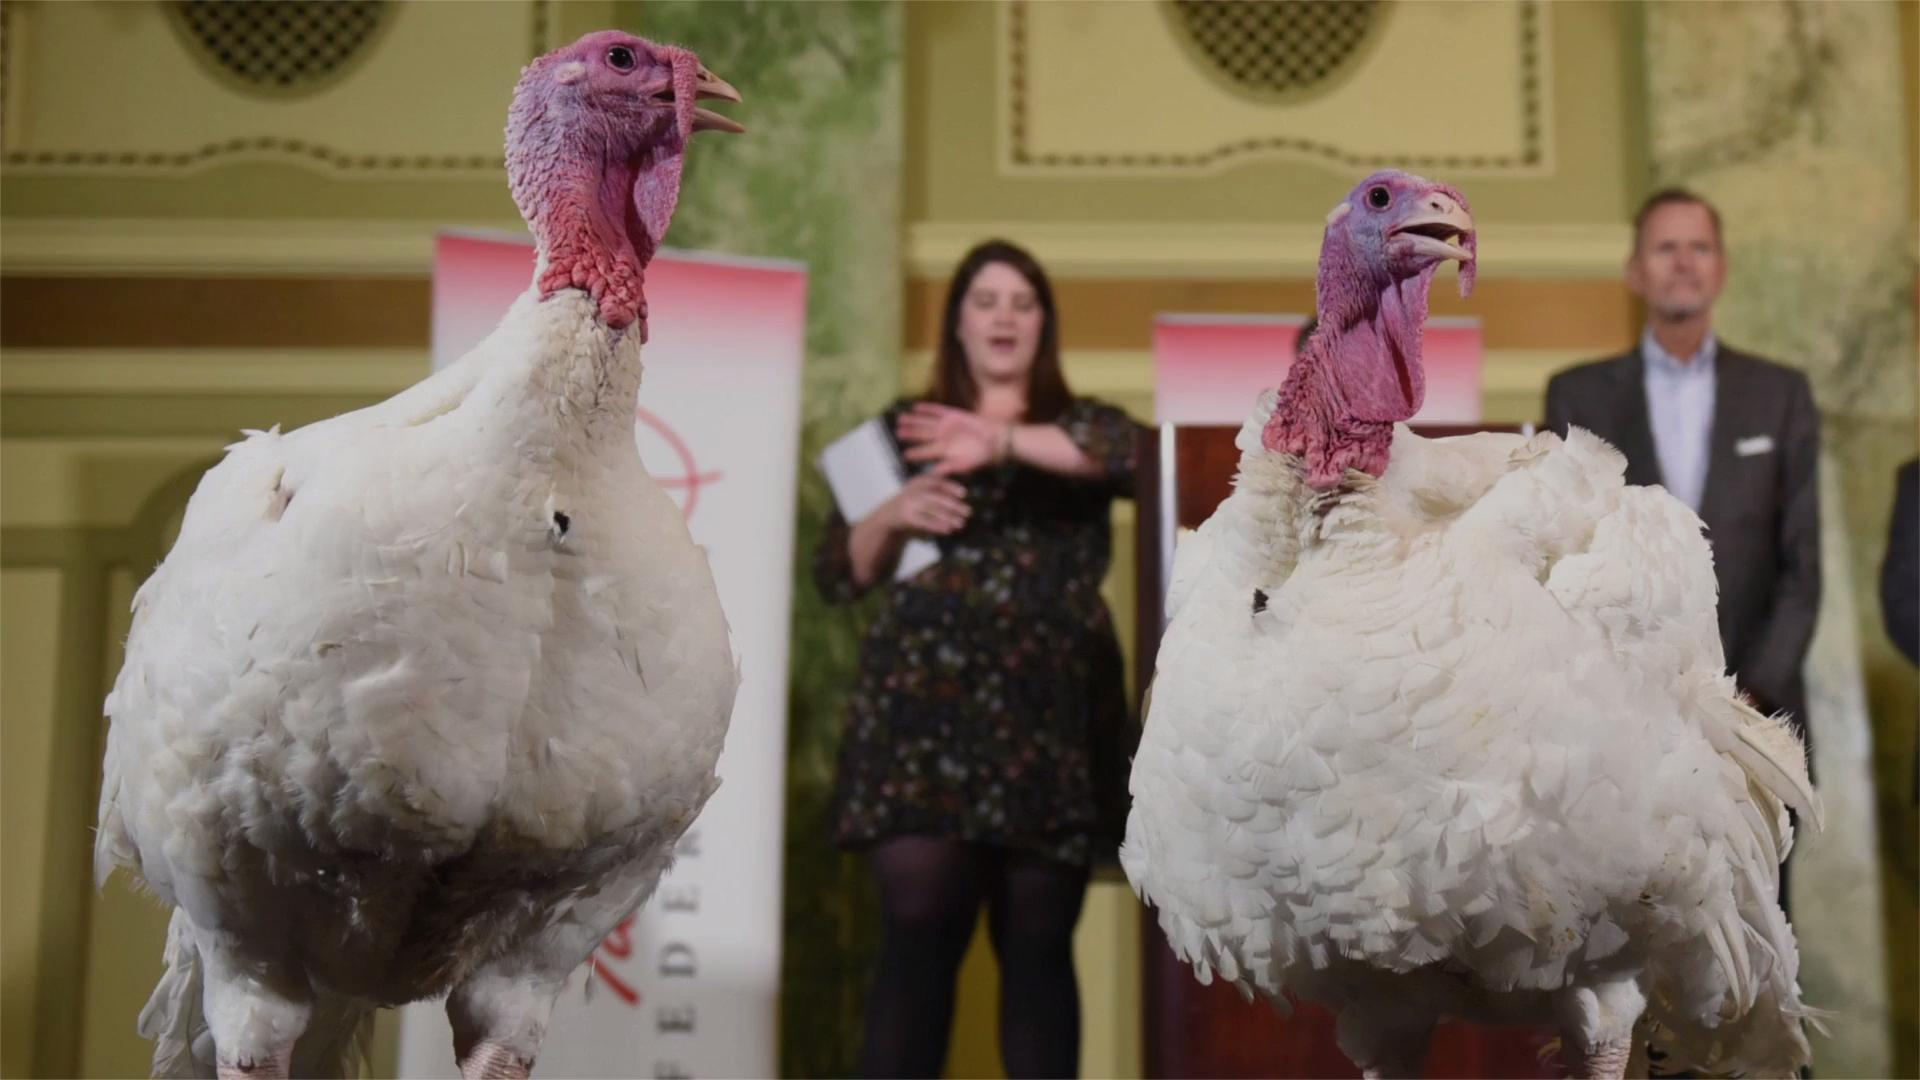 Meet Bread and Butter, the Two Lucky Turkeys Chosen for This Year's Thanksgiving Pardon